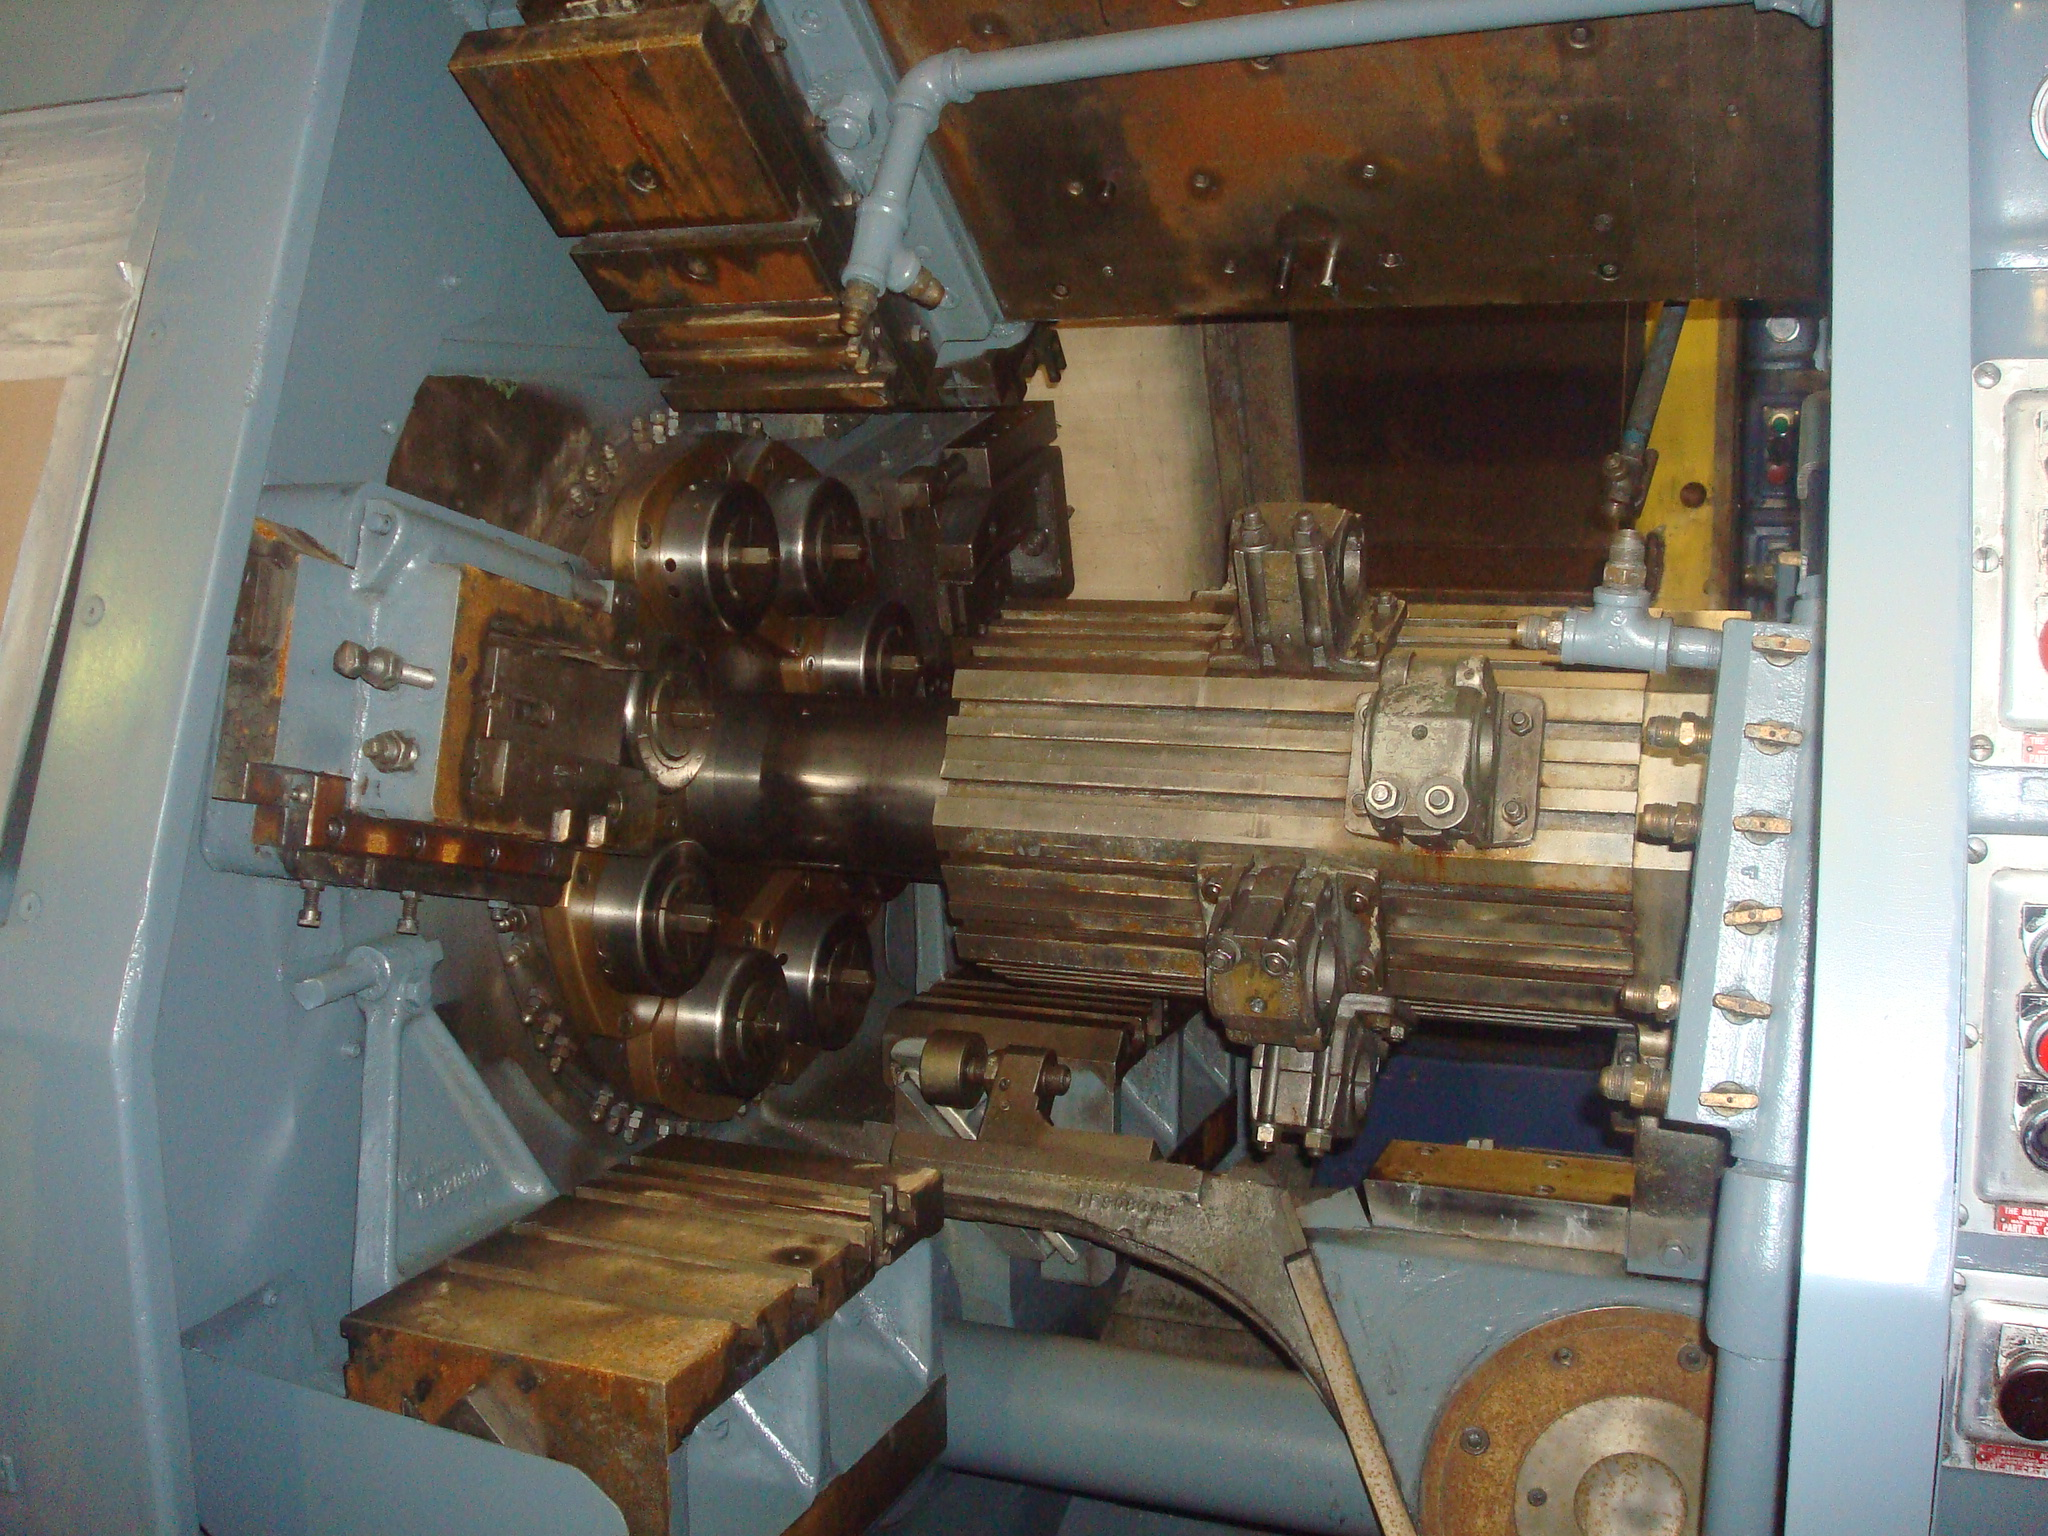 Very good condition 8 spindle machine, We can add any option you need and fit almost any budget, please let me know what you are looking for and we can help.